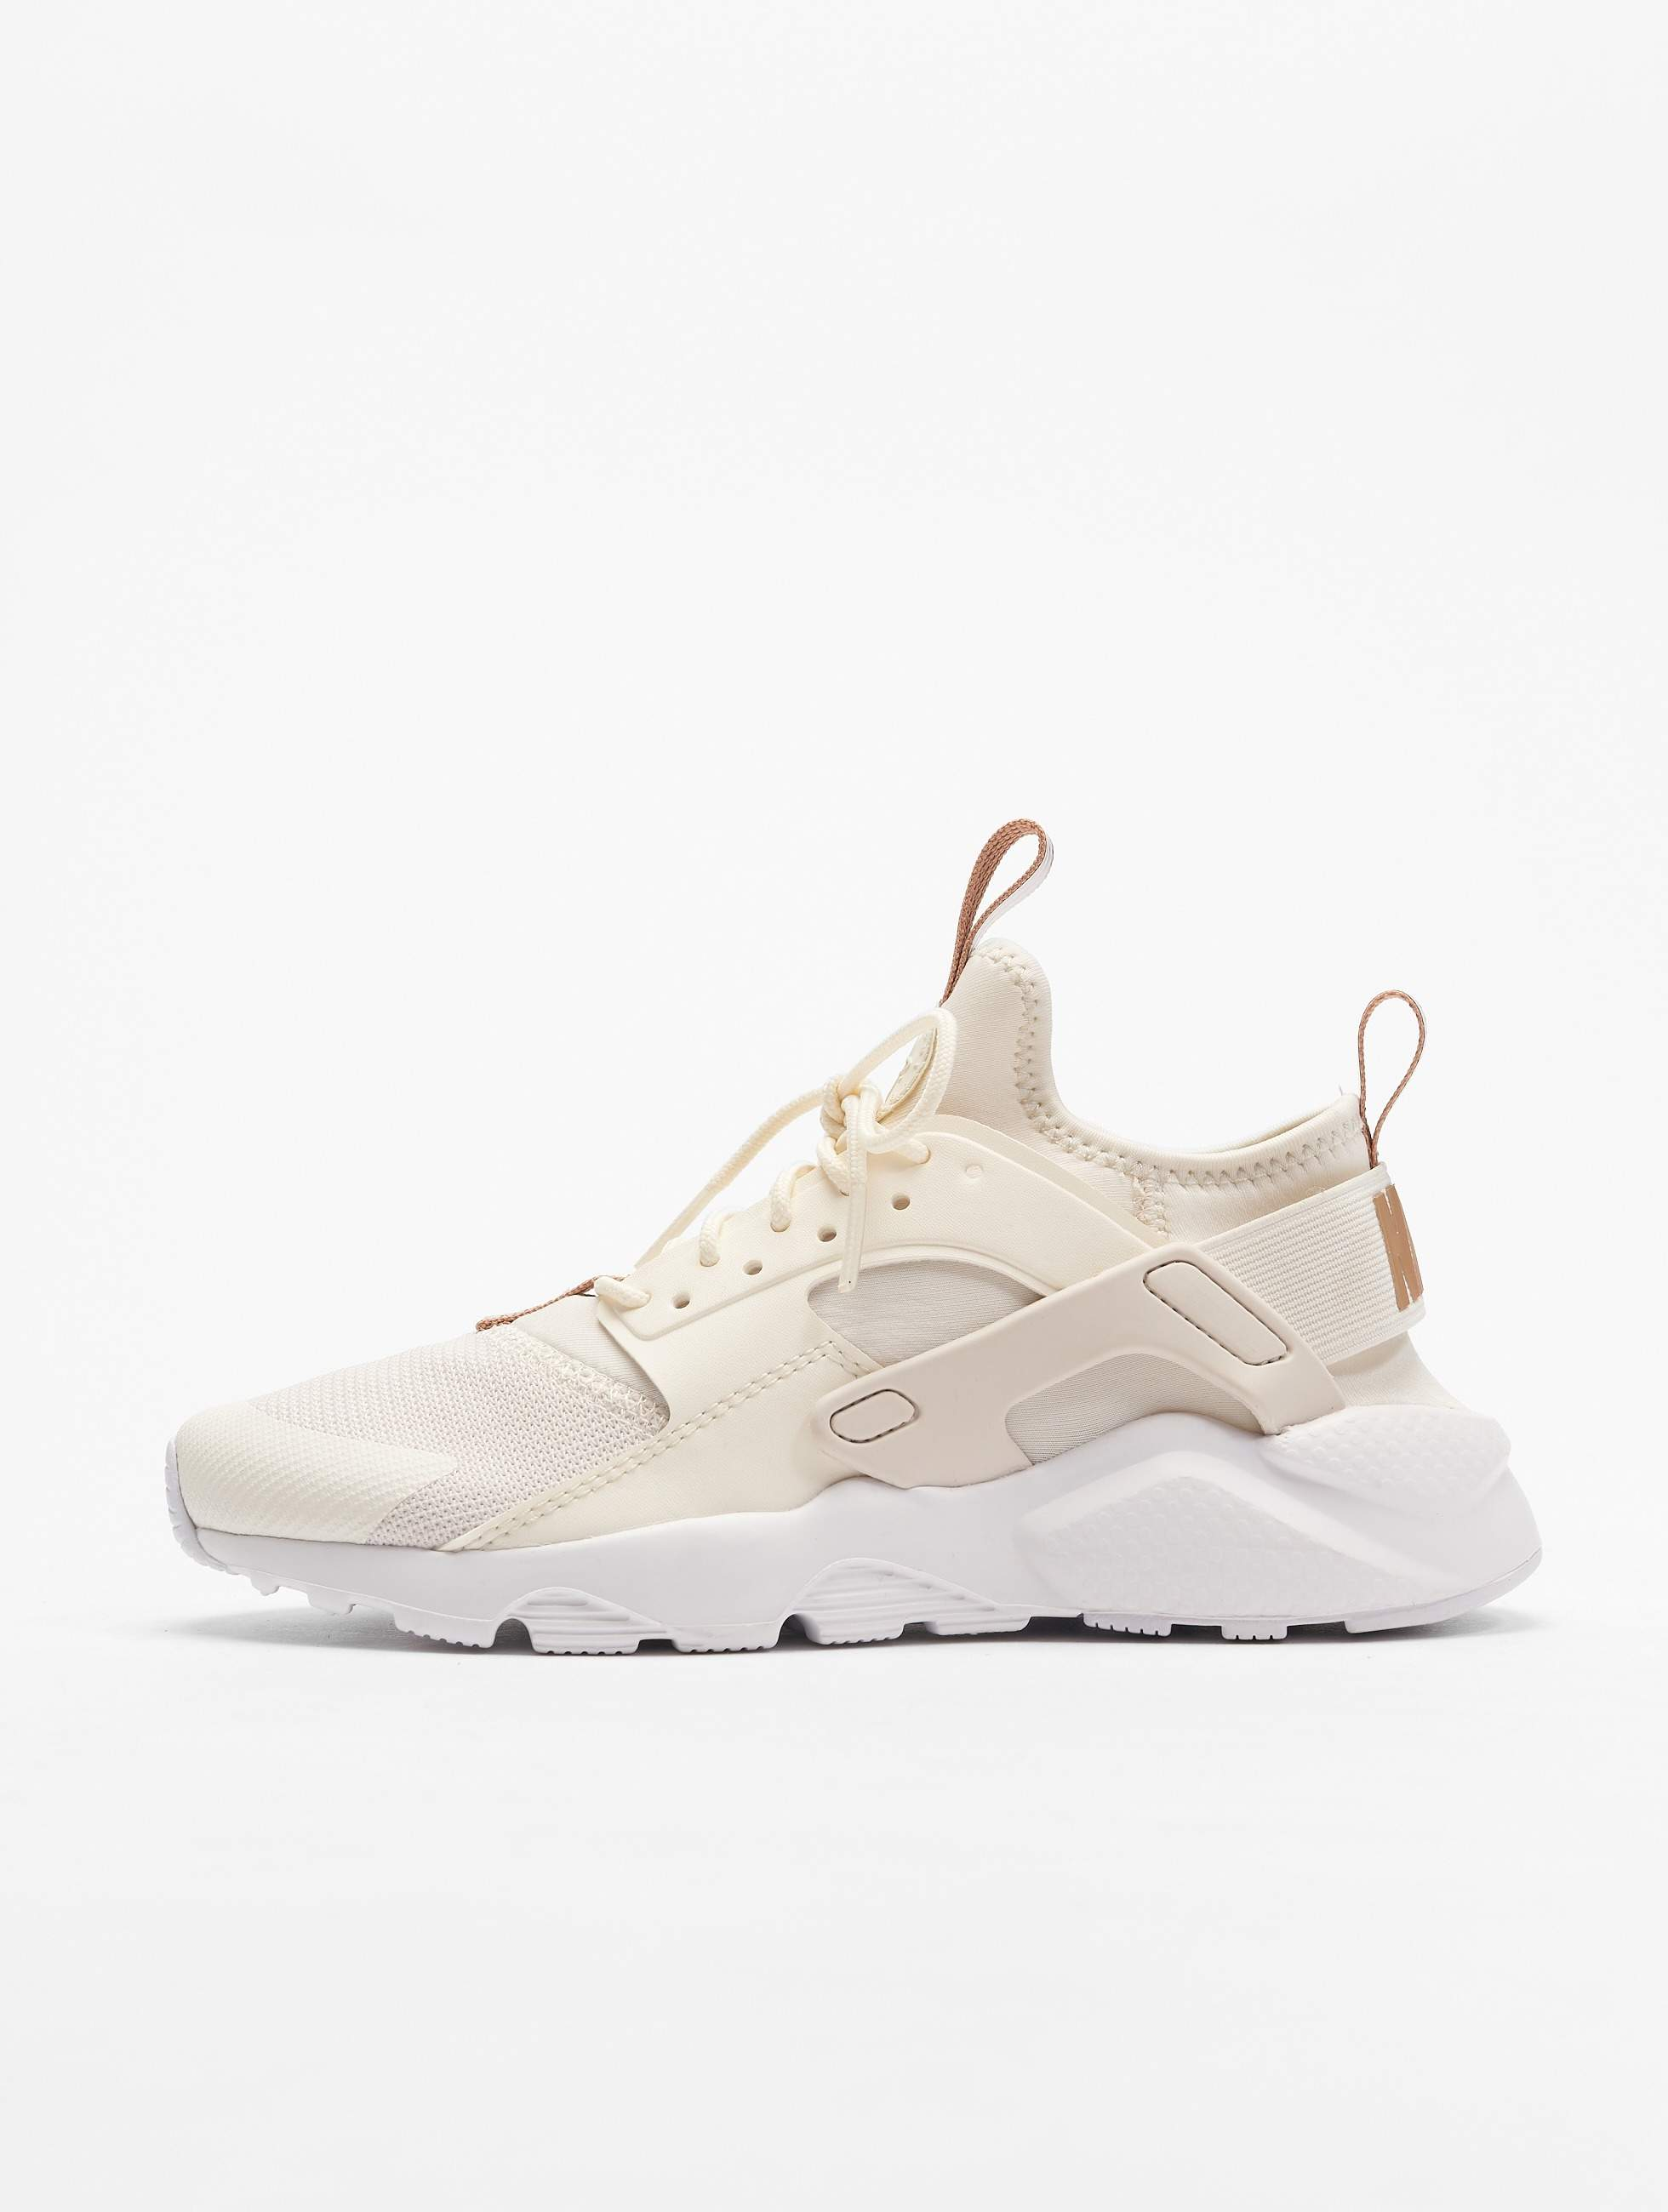 bf7c9e544ef Nike schoen / sneaker Air Huarache Run Ultra in beige 541233